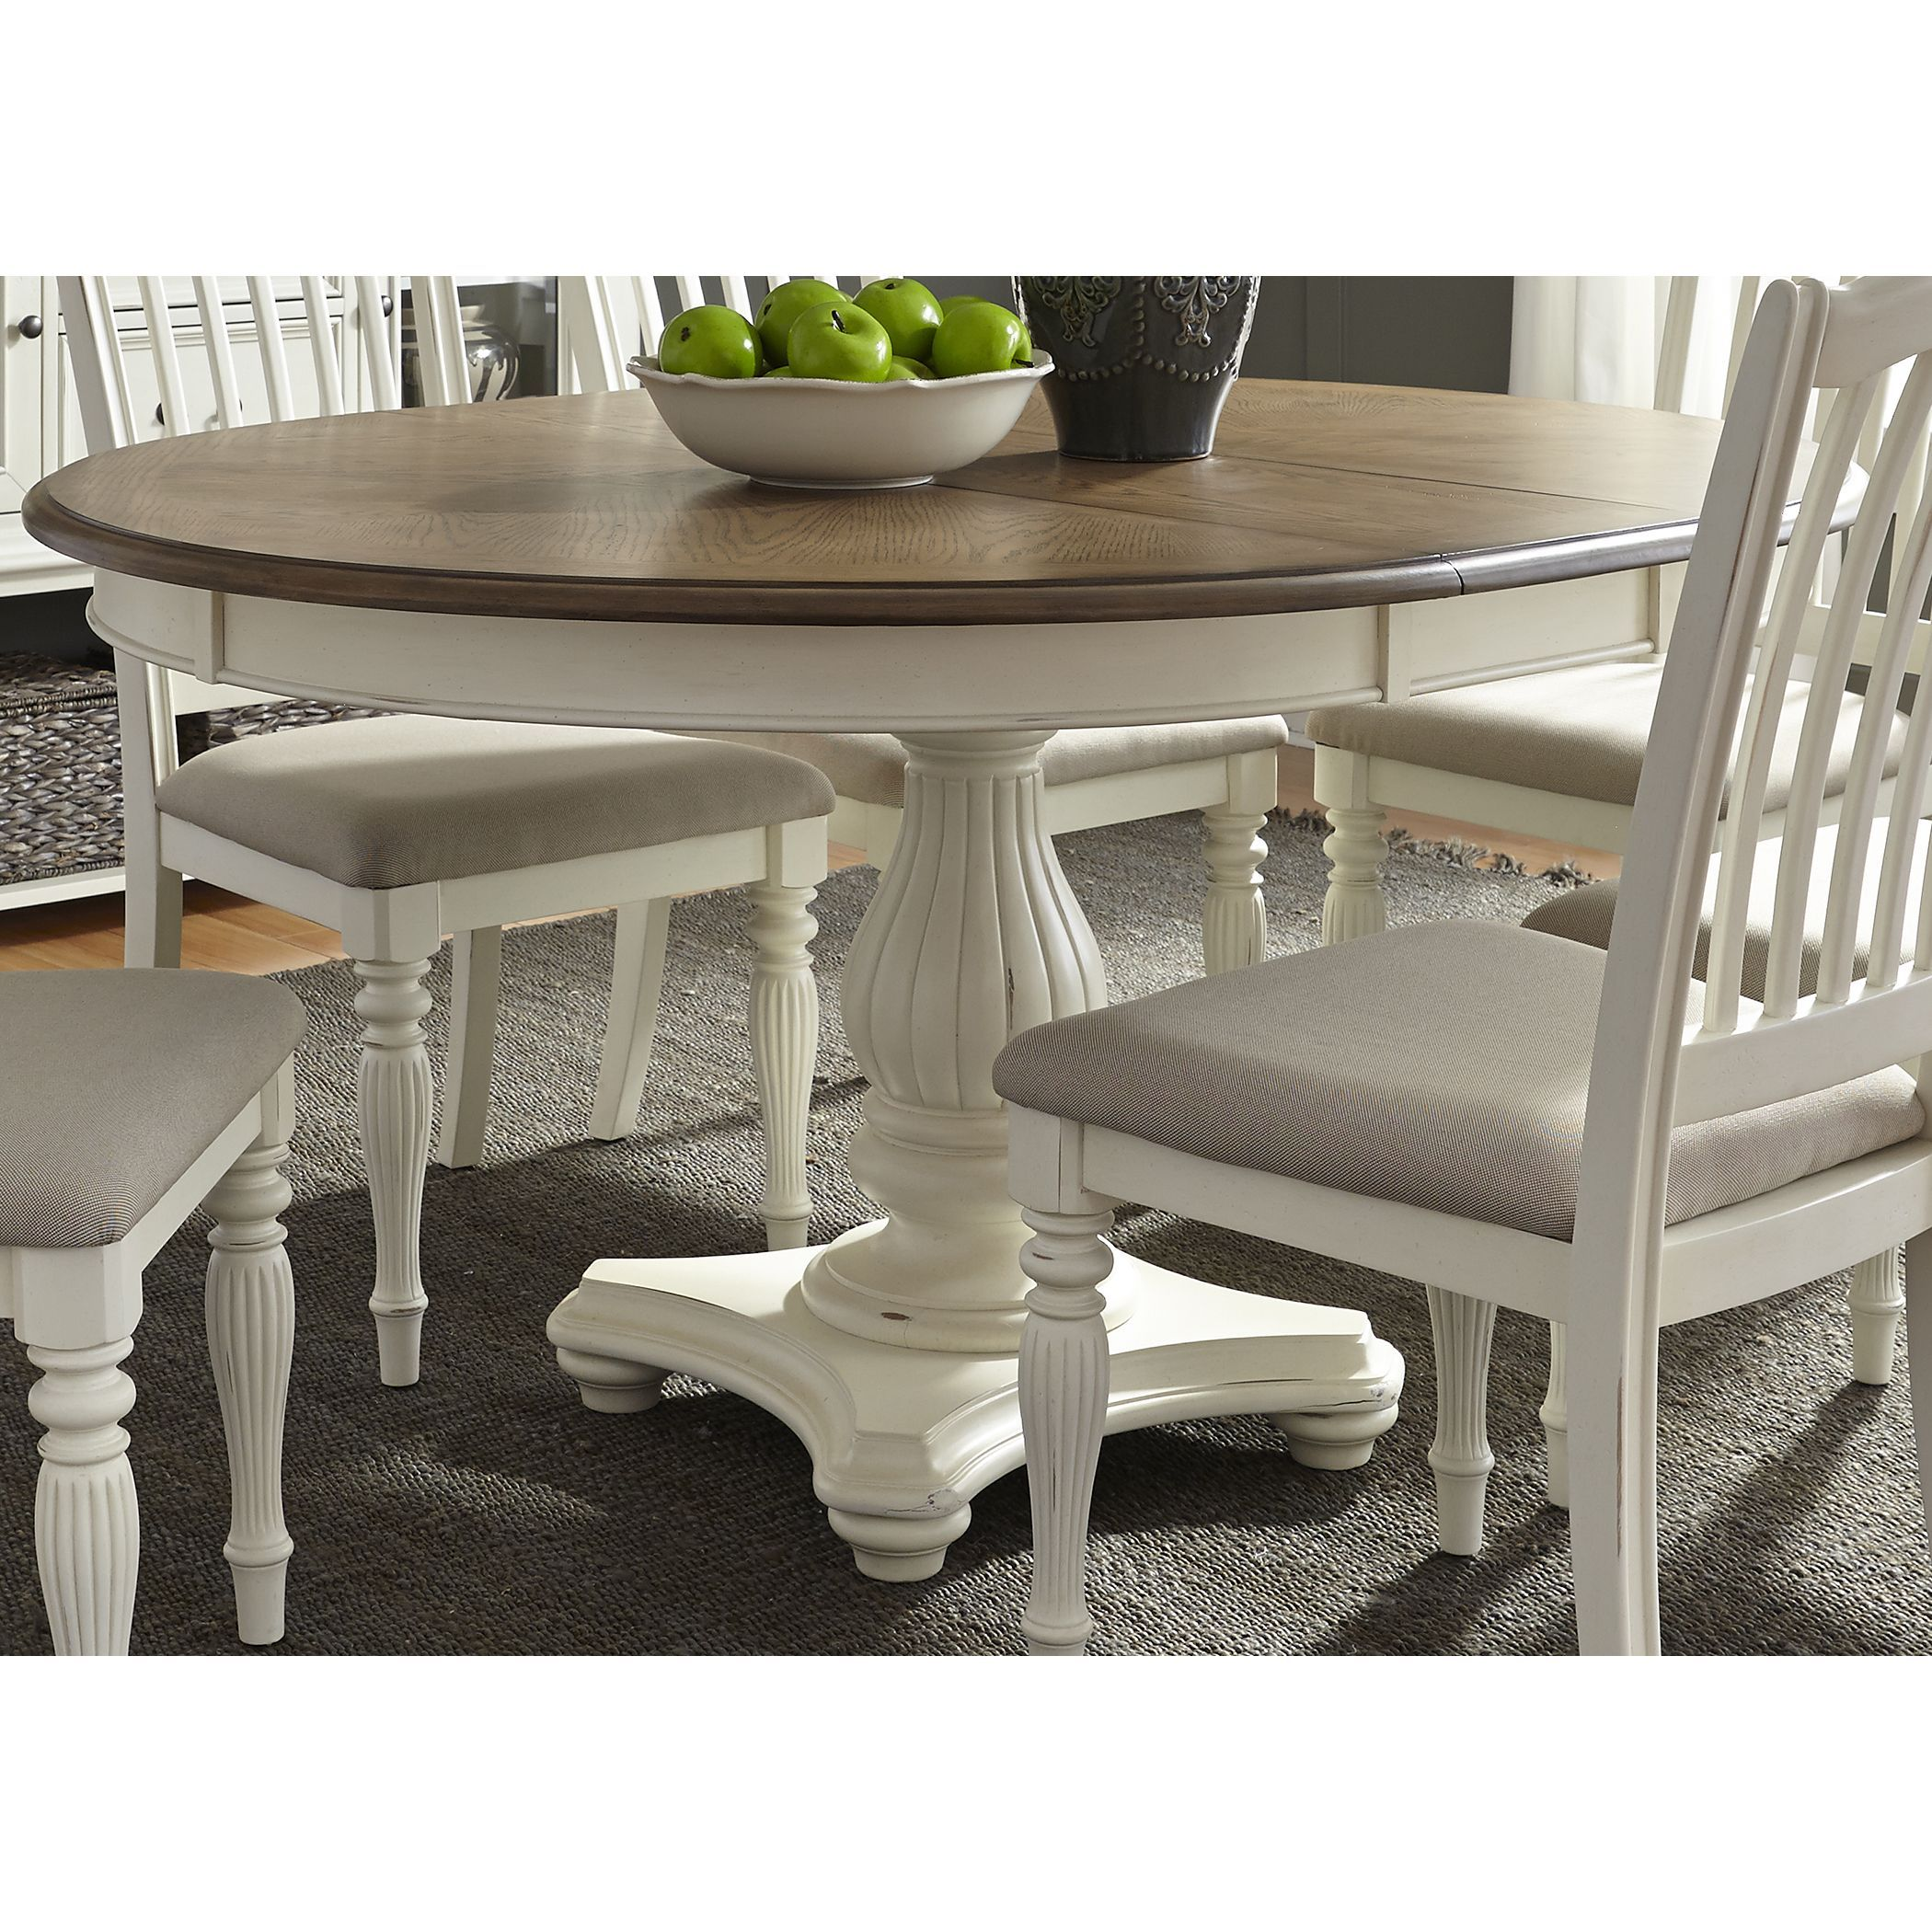 Liberty Cumberland Creek X Single Pedestal Oval Dinette Table - Single pedestal rectangular dining table